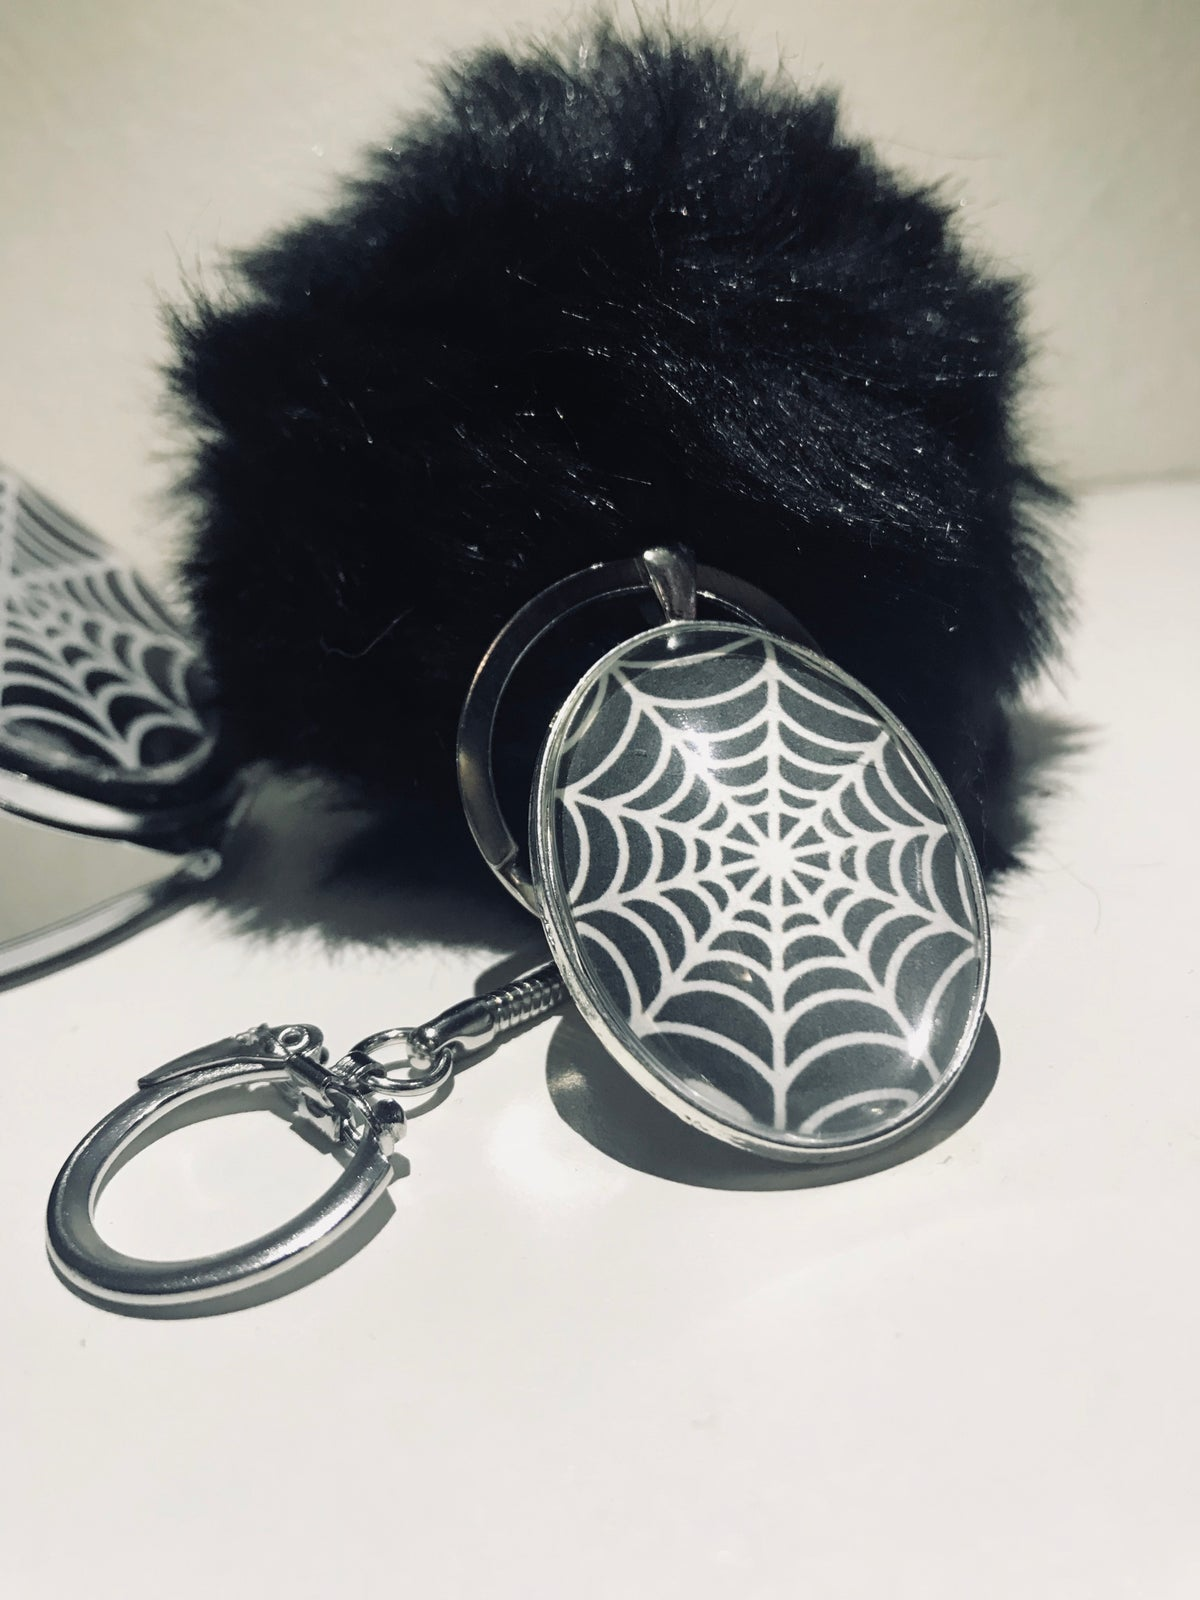 Image of Spooky Keychains